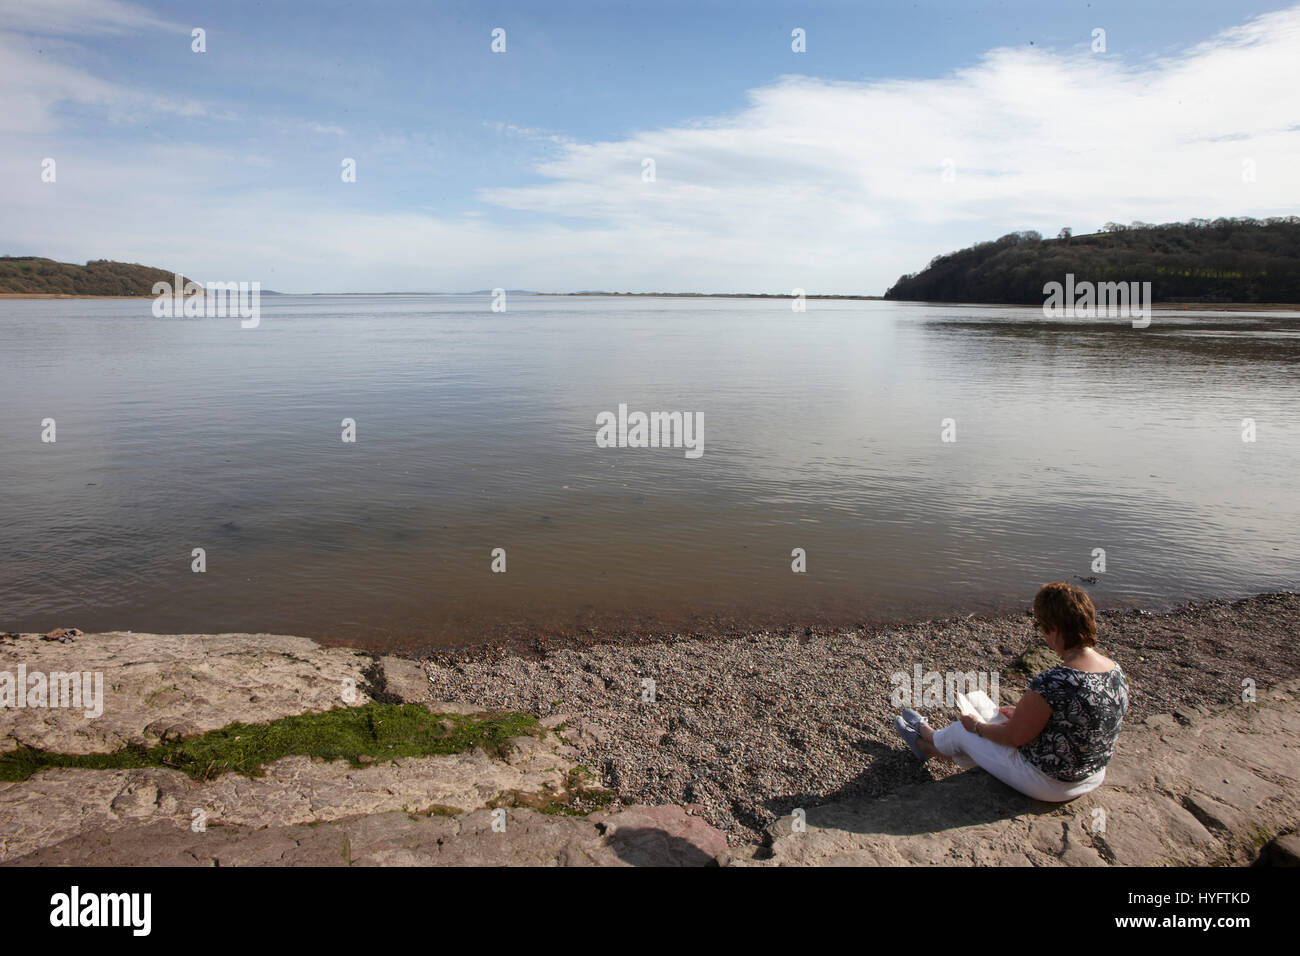 Lady sat by the waters edge reading, The Literary Festival, Laugharne, Wales, Uk - Stock Image